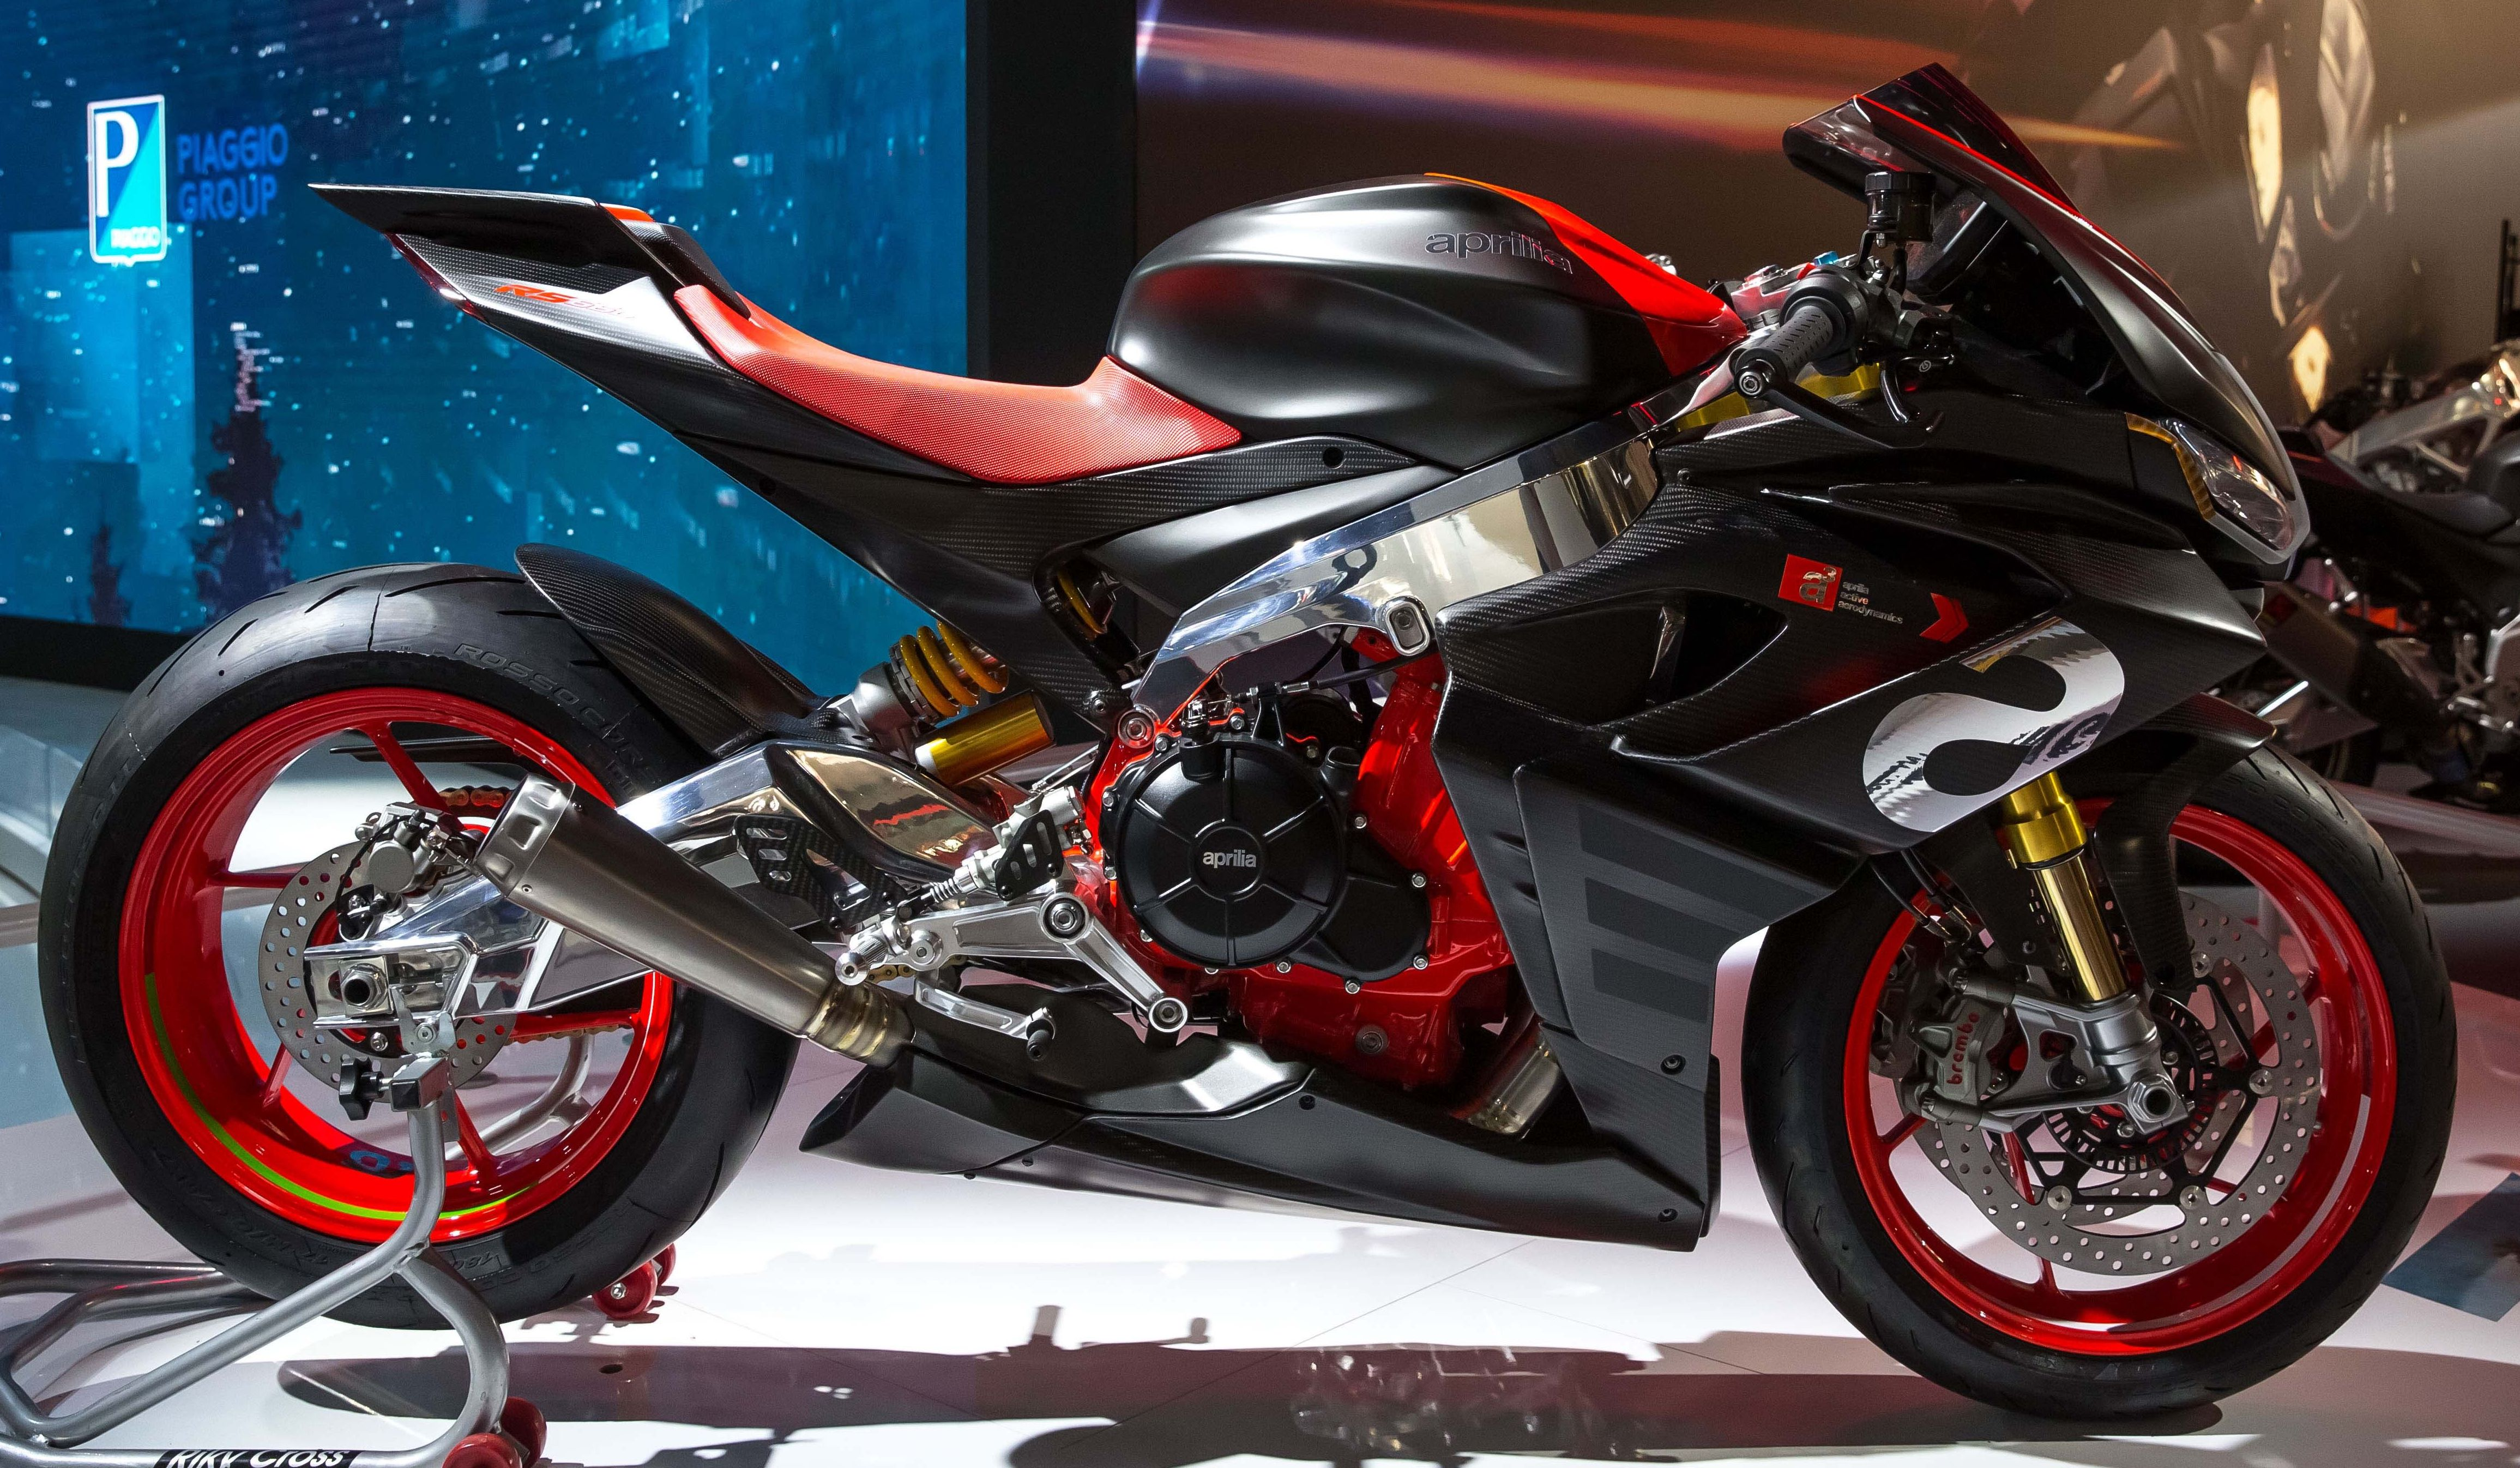 Aprilia RS 660 concept motorcycle to debut in 2020? Paul ...